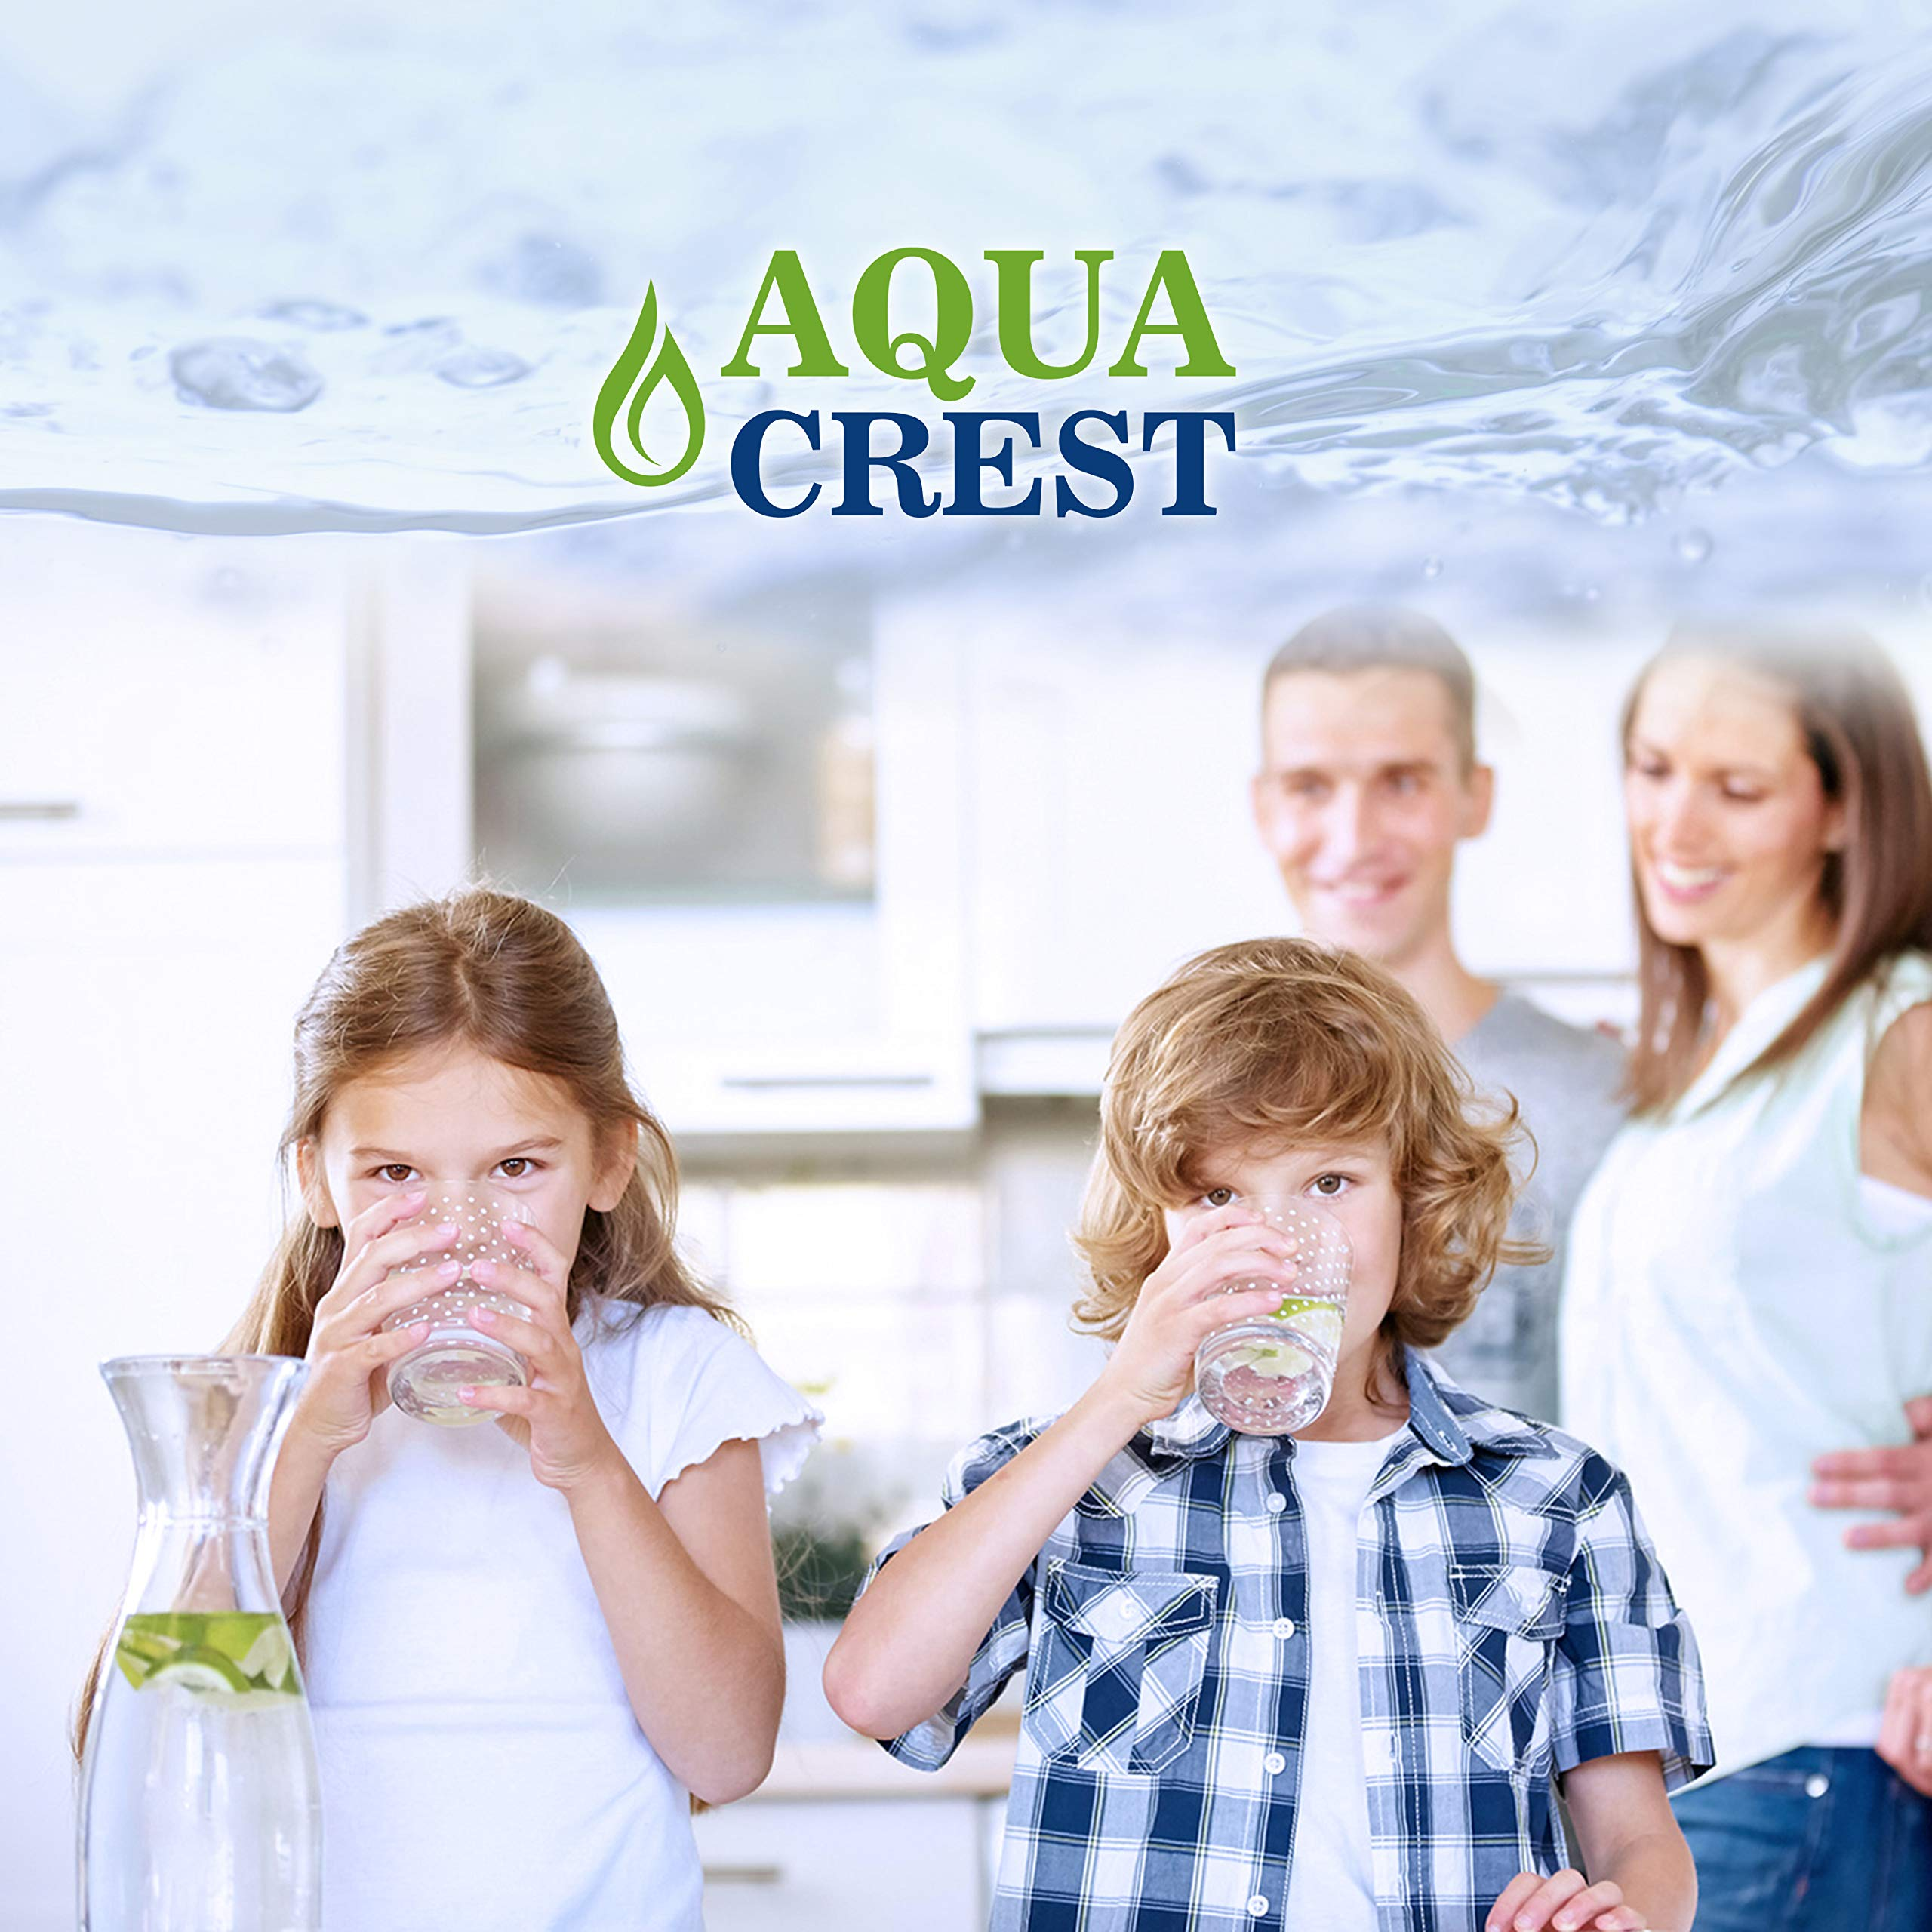 AQUACREST AP431 Replacement Filter Cartridge, Compatible with Aqua-Pure AP431 Hot Water Scale Inhibition Filter for AP430SS (Pack of 3) by AQUA CREST (Image #9)